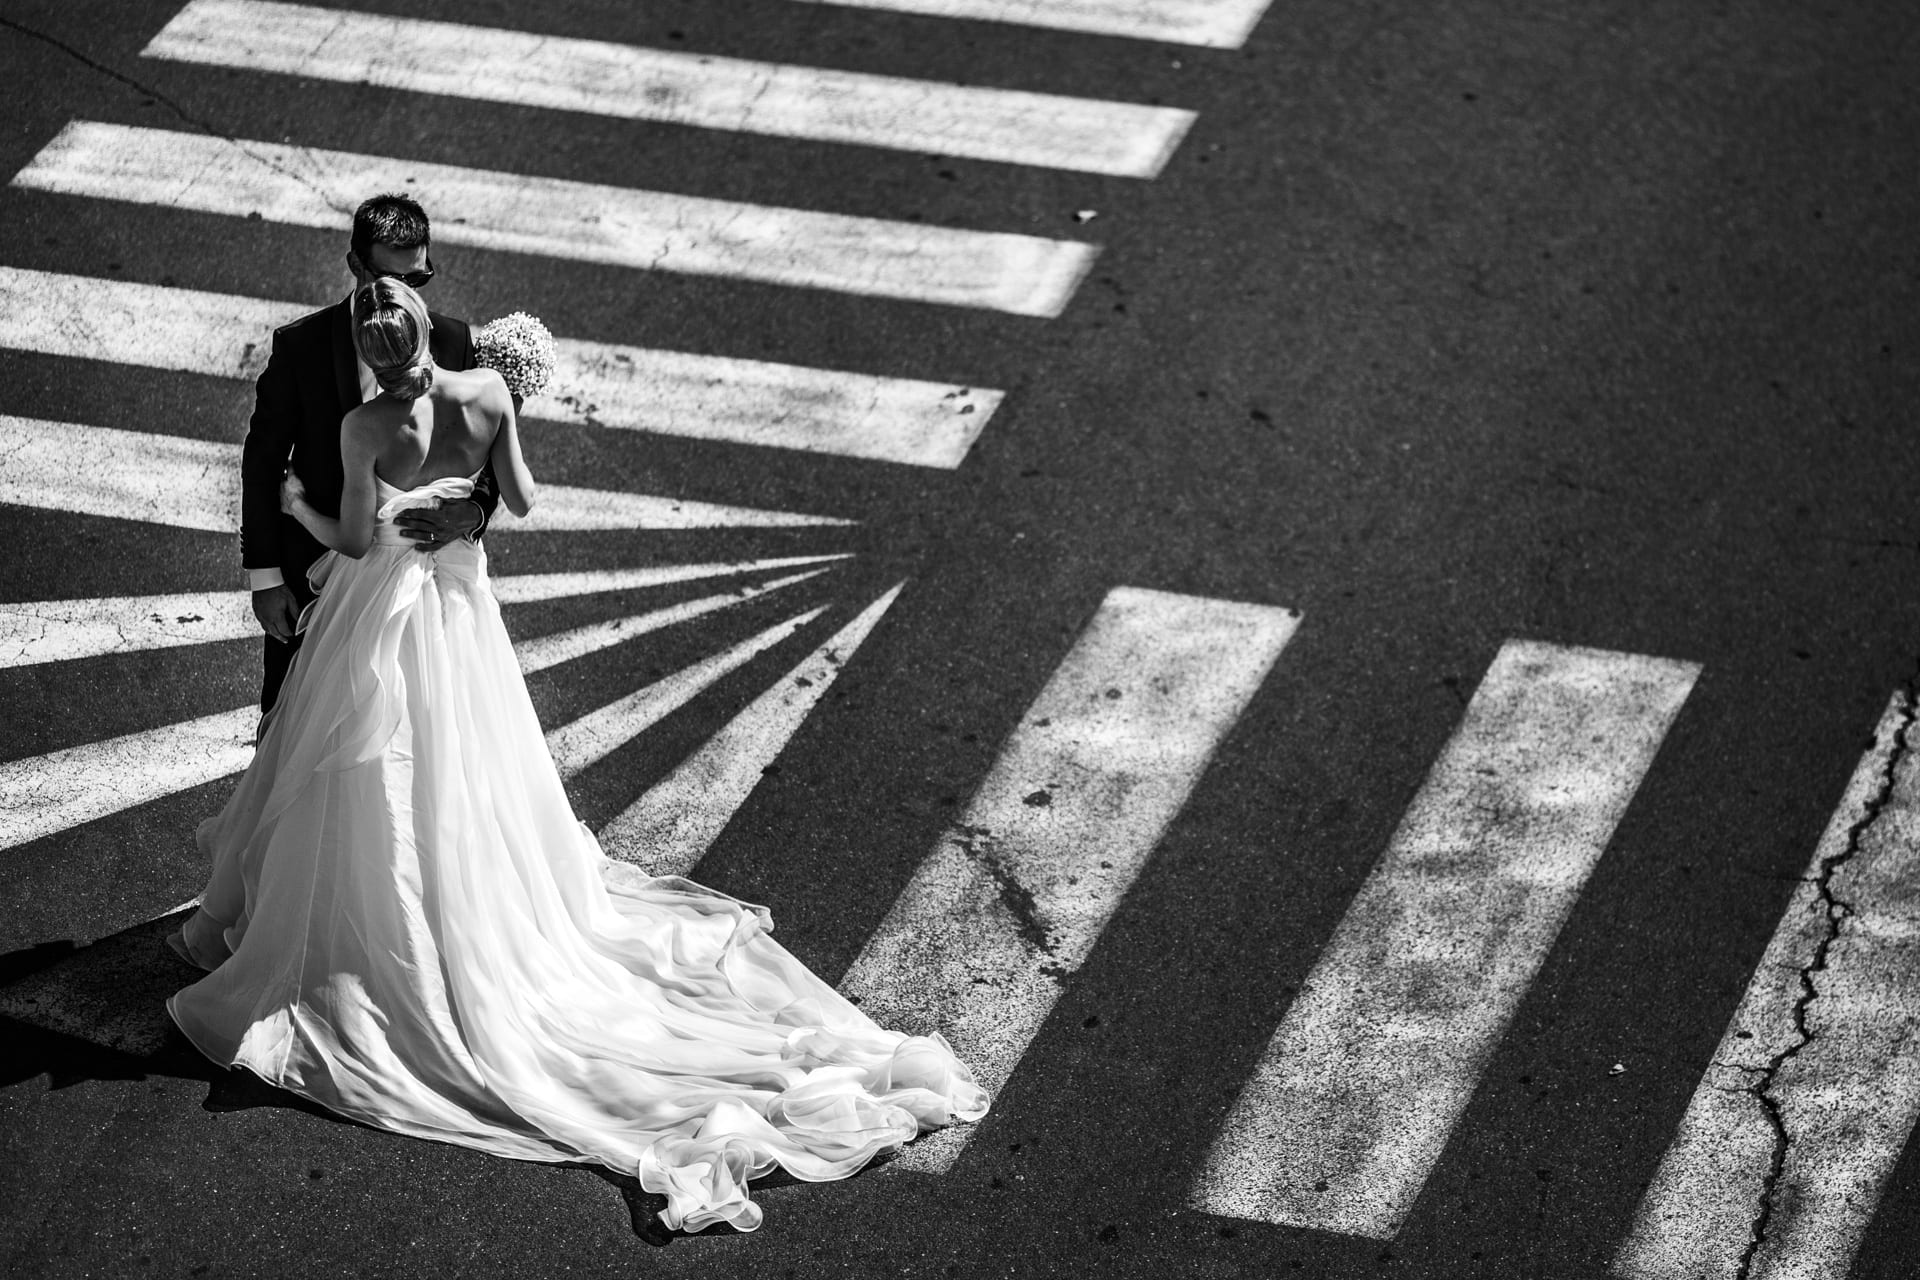 https://s3-eu-central-1.amazonaws.com/righiphotography-com/wp-content/uploads/2020/02/02183136/Wedding-Photo-No-Pose-Studio-Fotografico-Righi-RIGHI-91.jpg